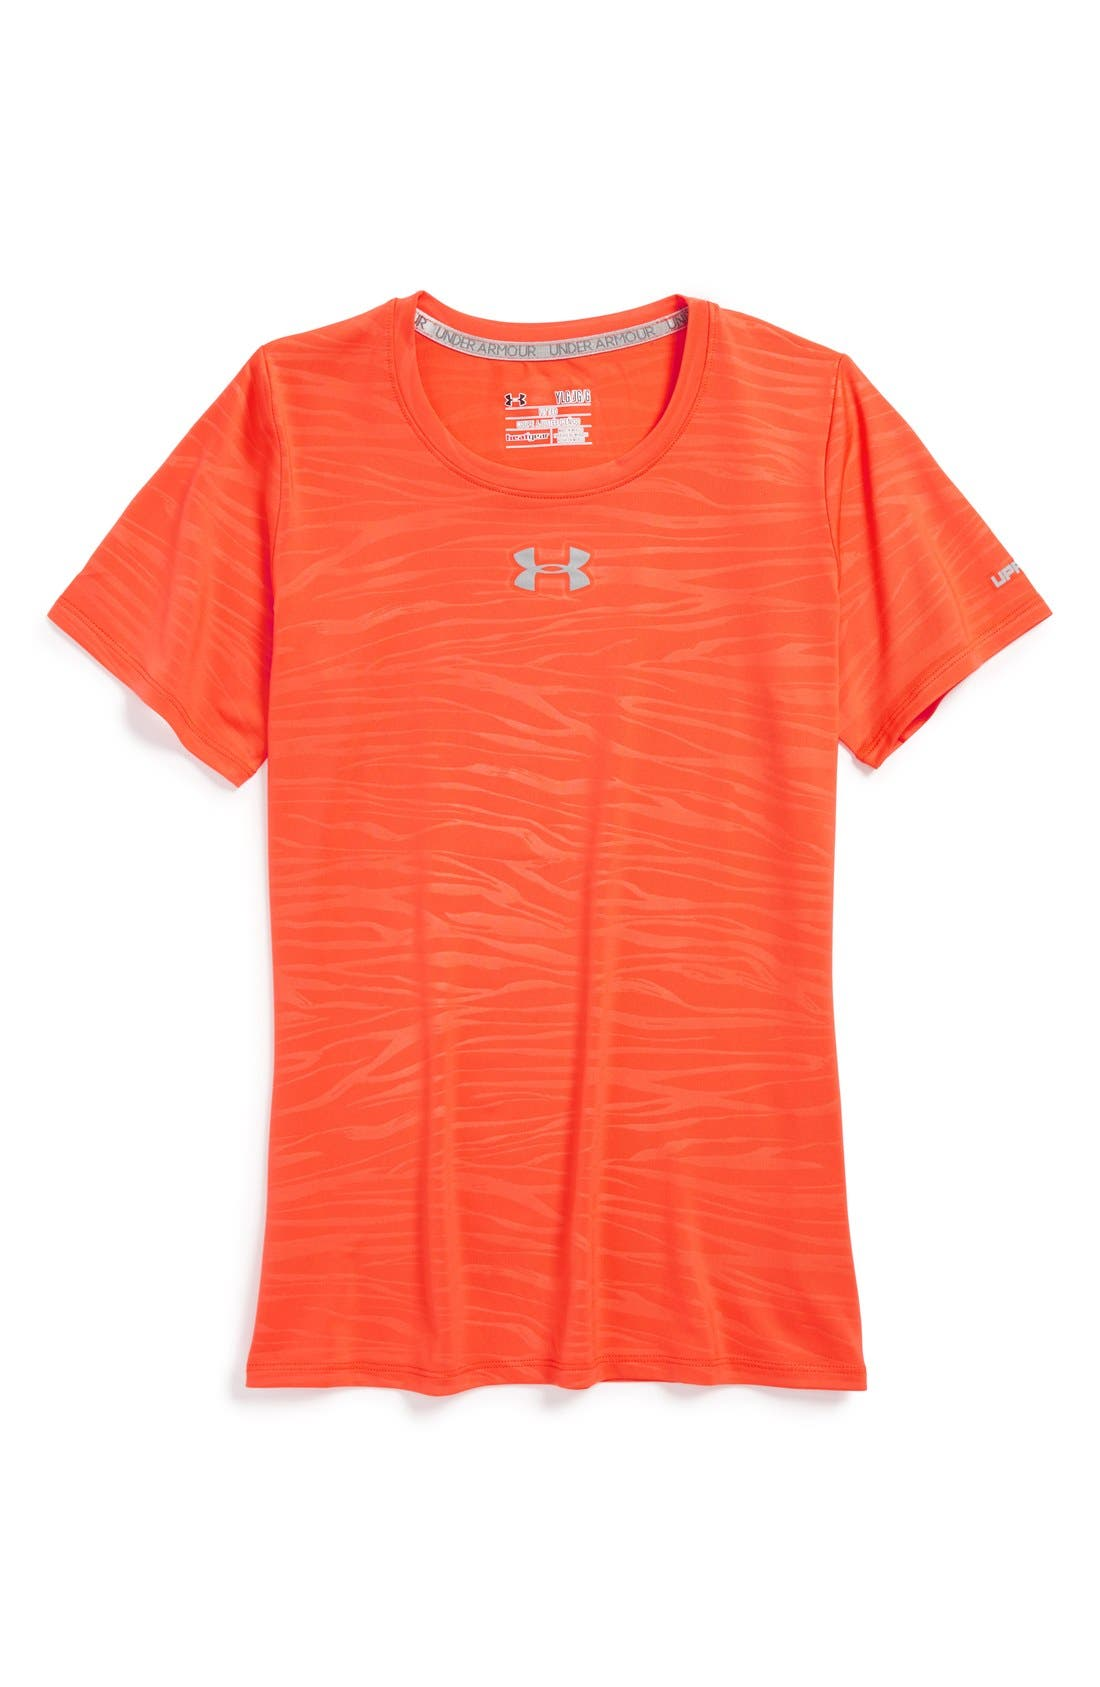 Alternate Image 1 Selected - Under Armour 'Sonic Print' HeatGear® Fitted Tee (Big Girls)